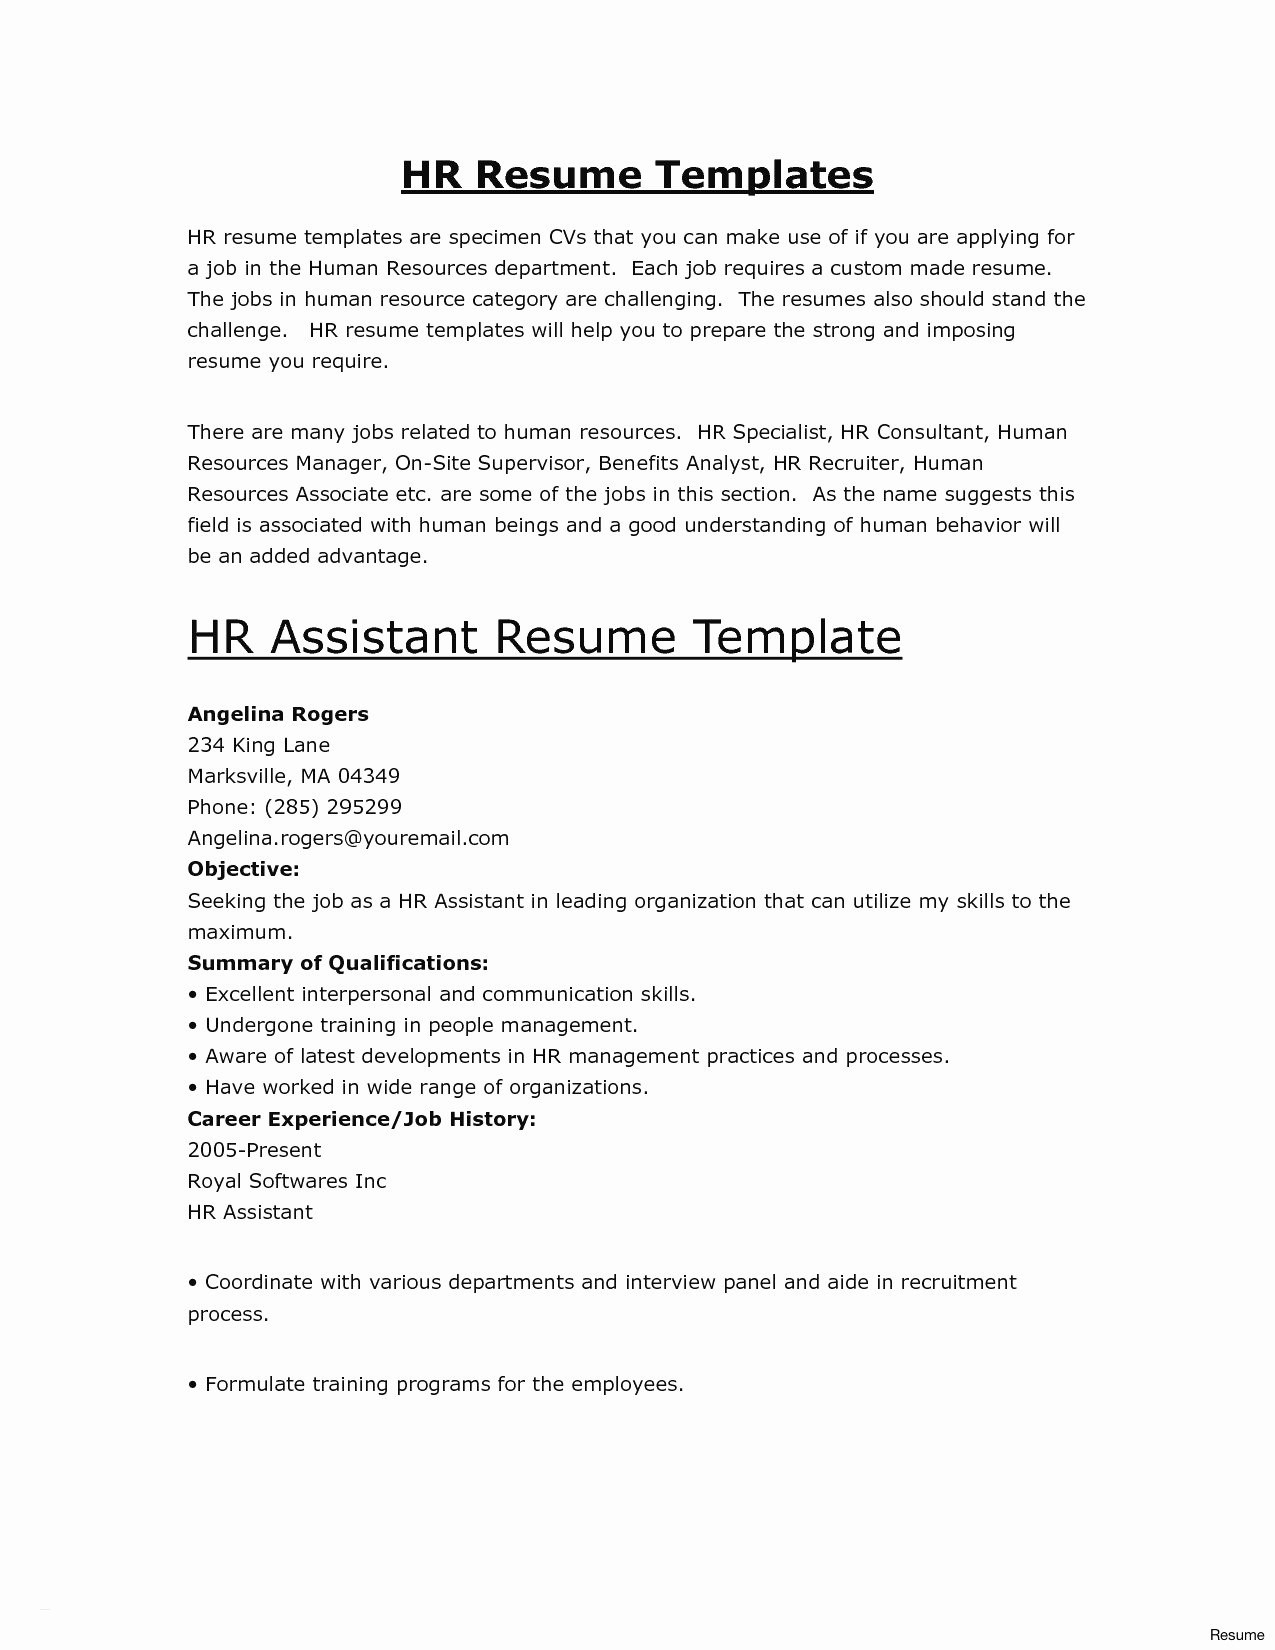 Word Resume Template - Download Luxury Word 2013 Resume Templates